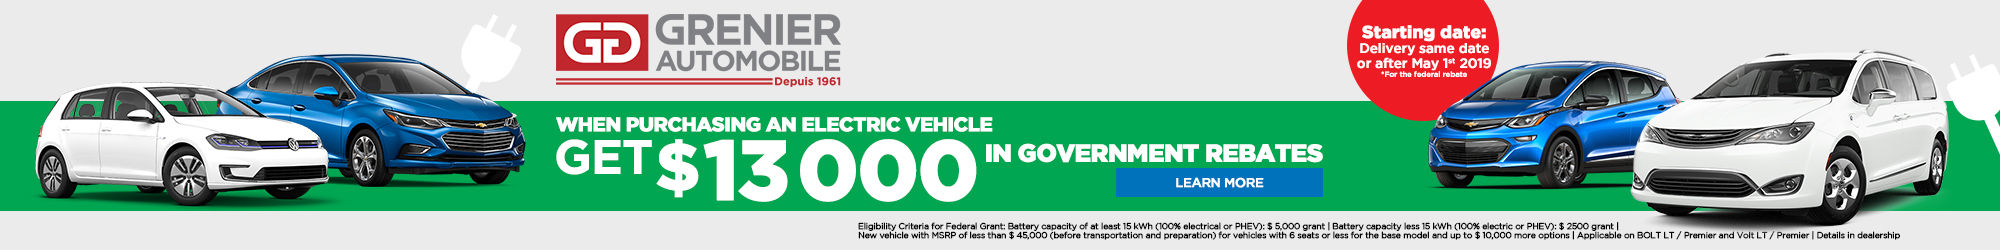 Government rebate for electric vehicles (Copy) (Copy)